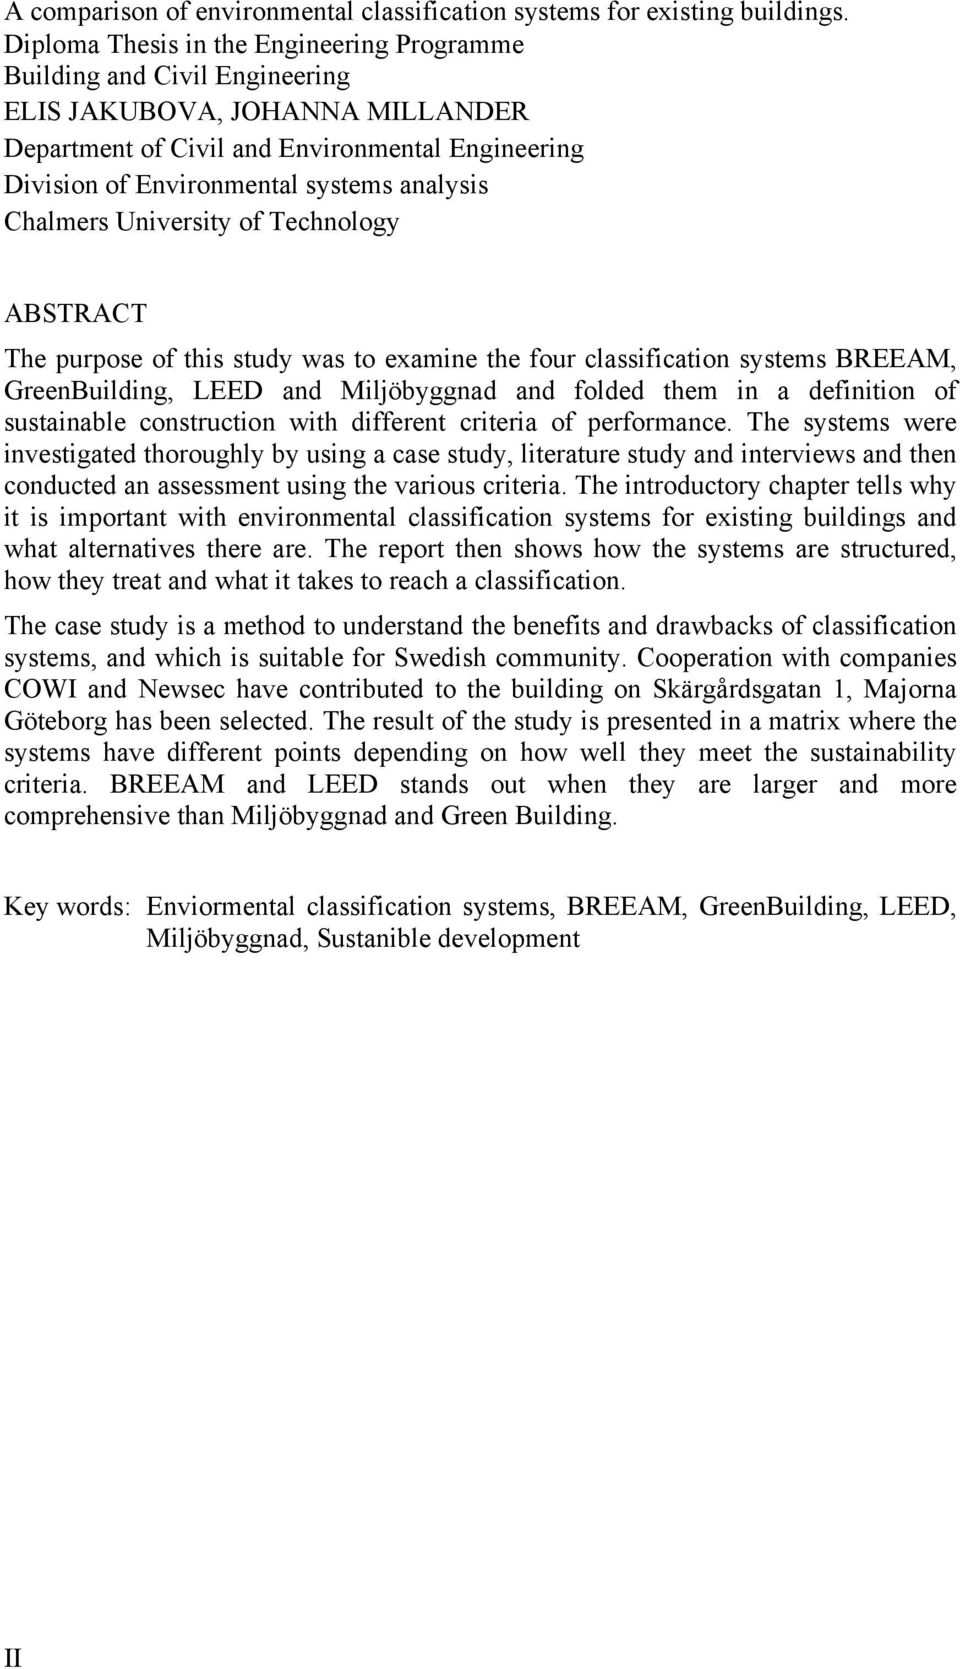 analysis Chalmers University of Technology ABSTRACT The purpose of this study was to examine the four classification systems BREEAM, GreenBuilding, LEED and Miljöbyggnad and folded them in a